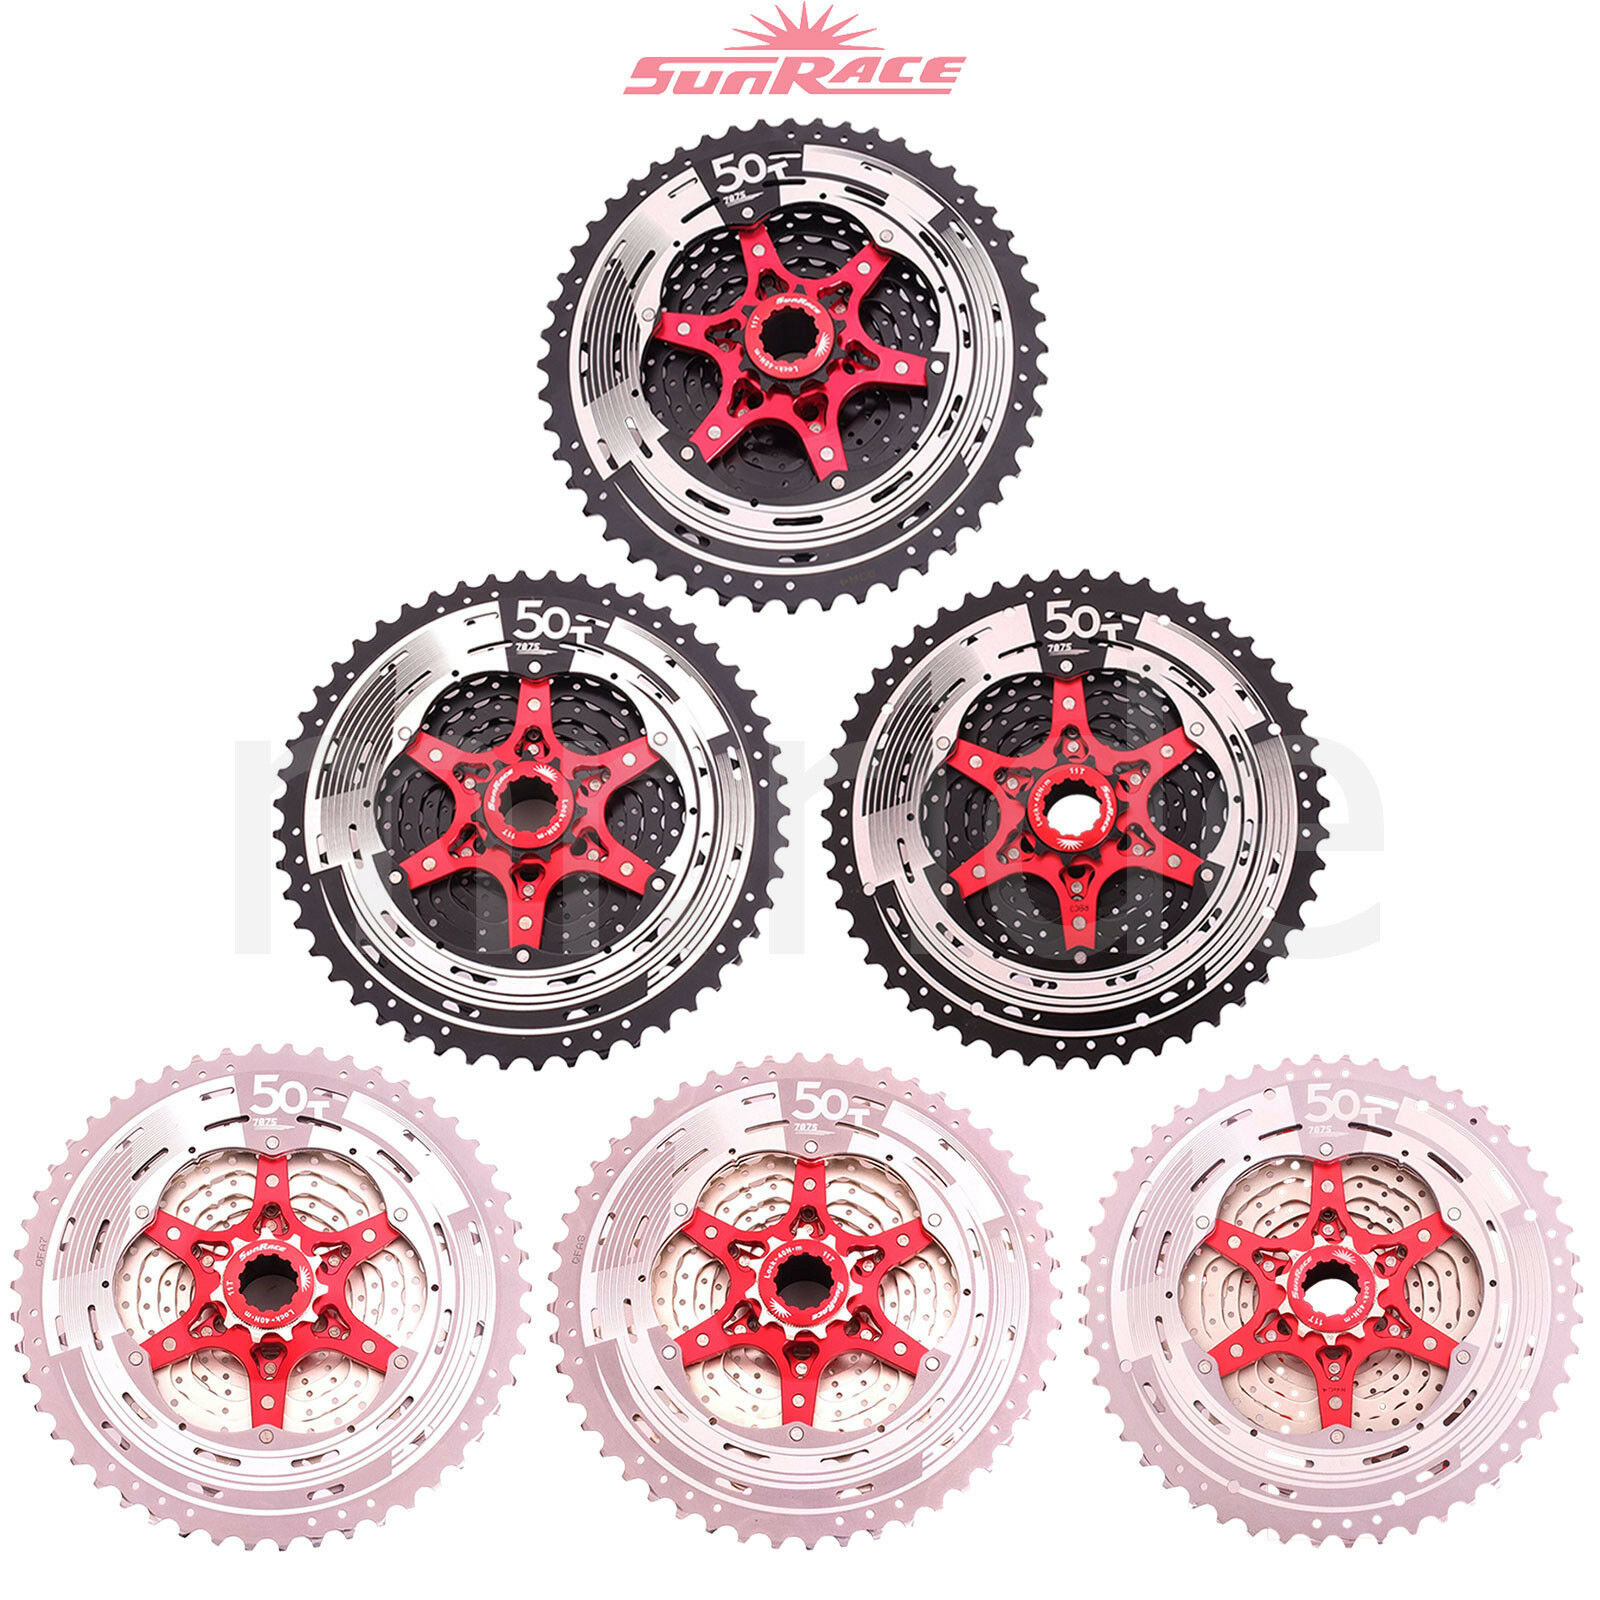 SunRace CSMX80,CSMZ90 11-50T Cassette 11 12 Speed for Shimano Mountain Bike